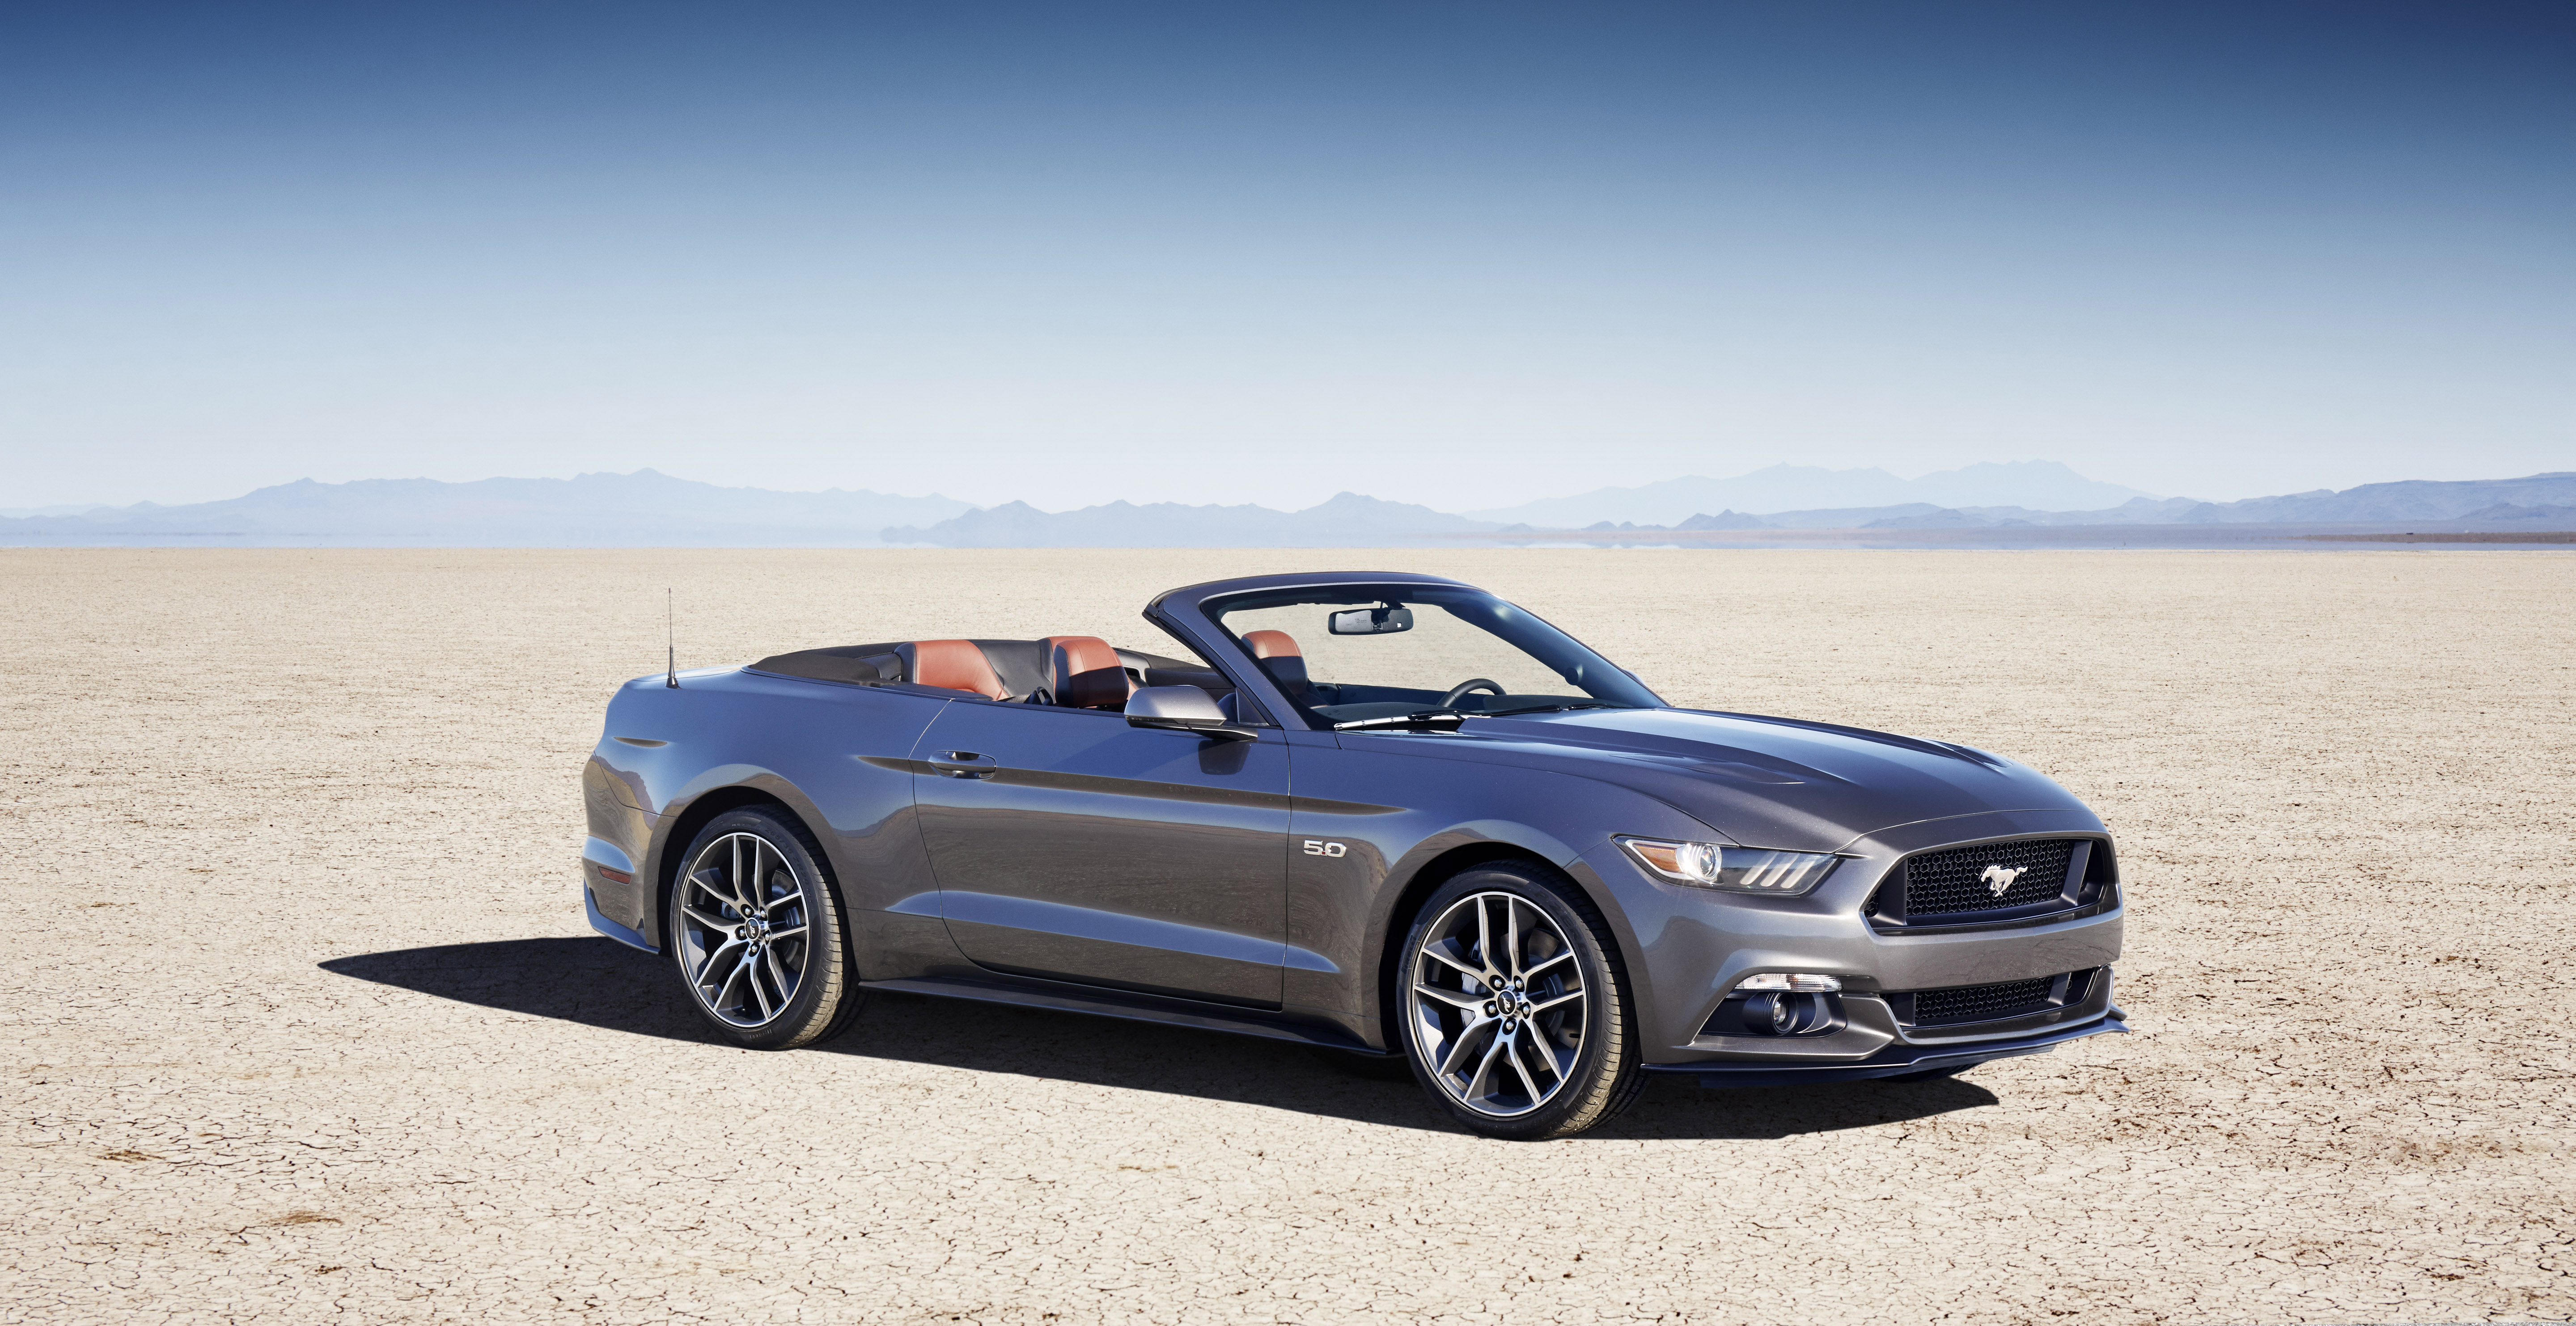 2015 Mustang Gt Color Options >> 2015 Mustang Options & Features - Motor Review